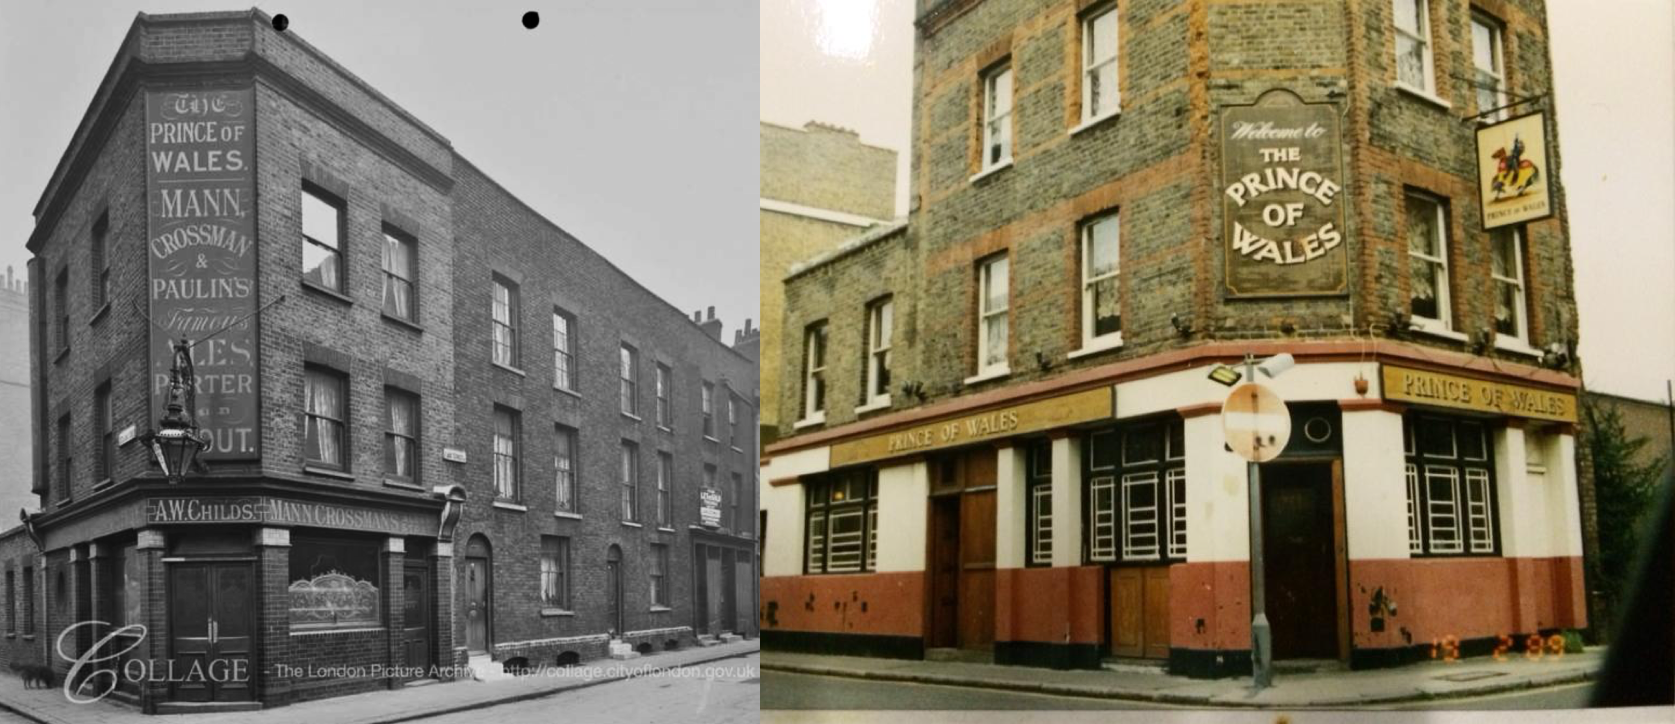 Lant Street, The Prince of Wales, was owned by Freddie Foreman in the 1960s & 1970s. X.png